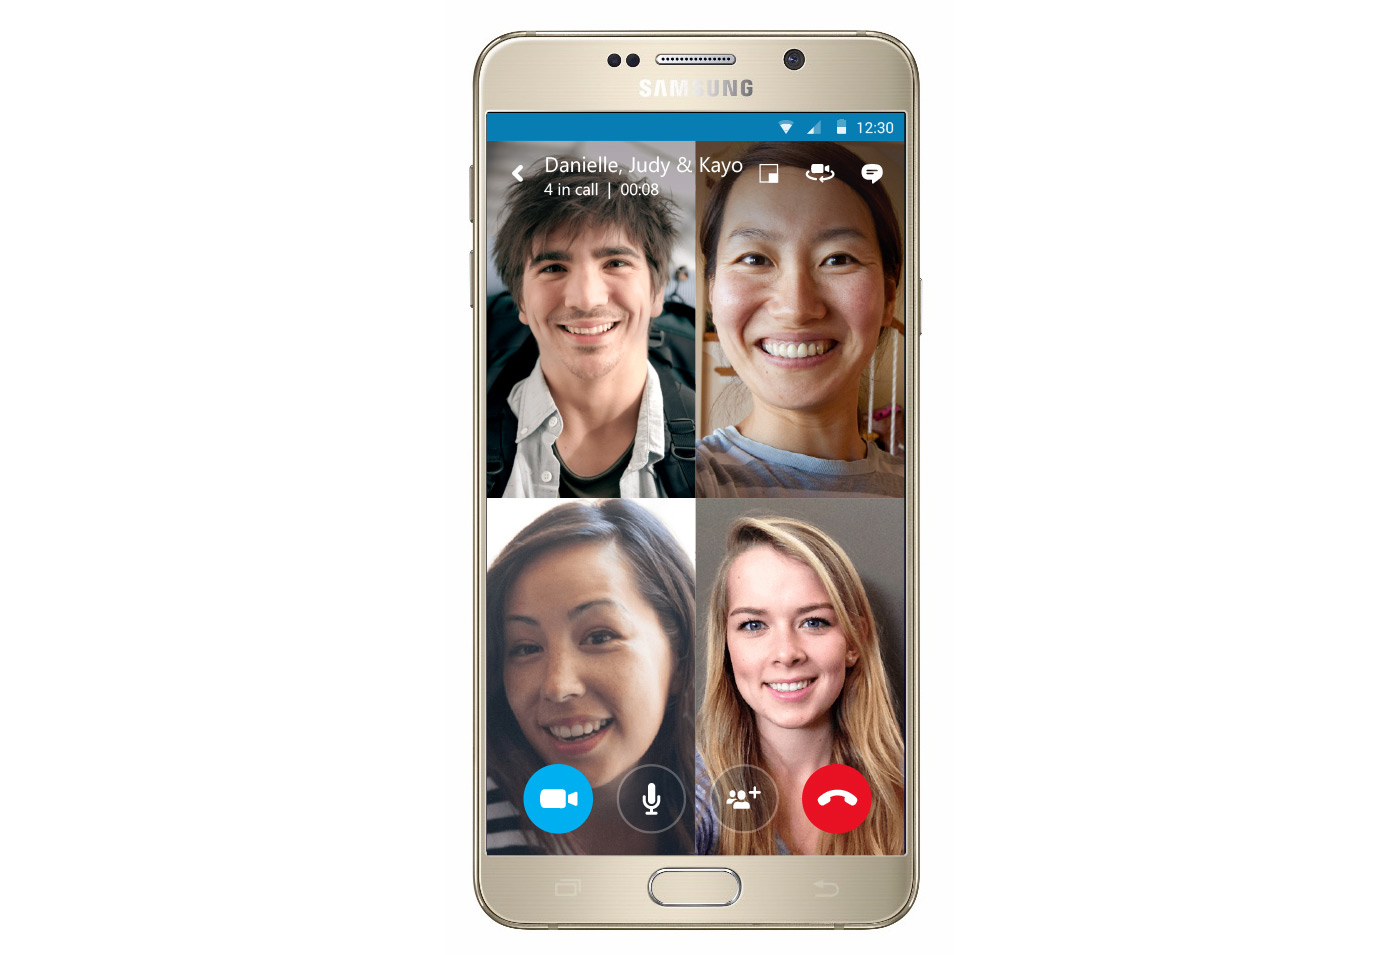 Outlook for iOS turns your meetings into Skype calls